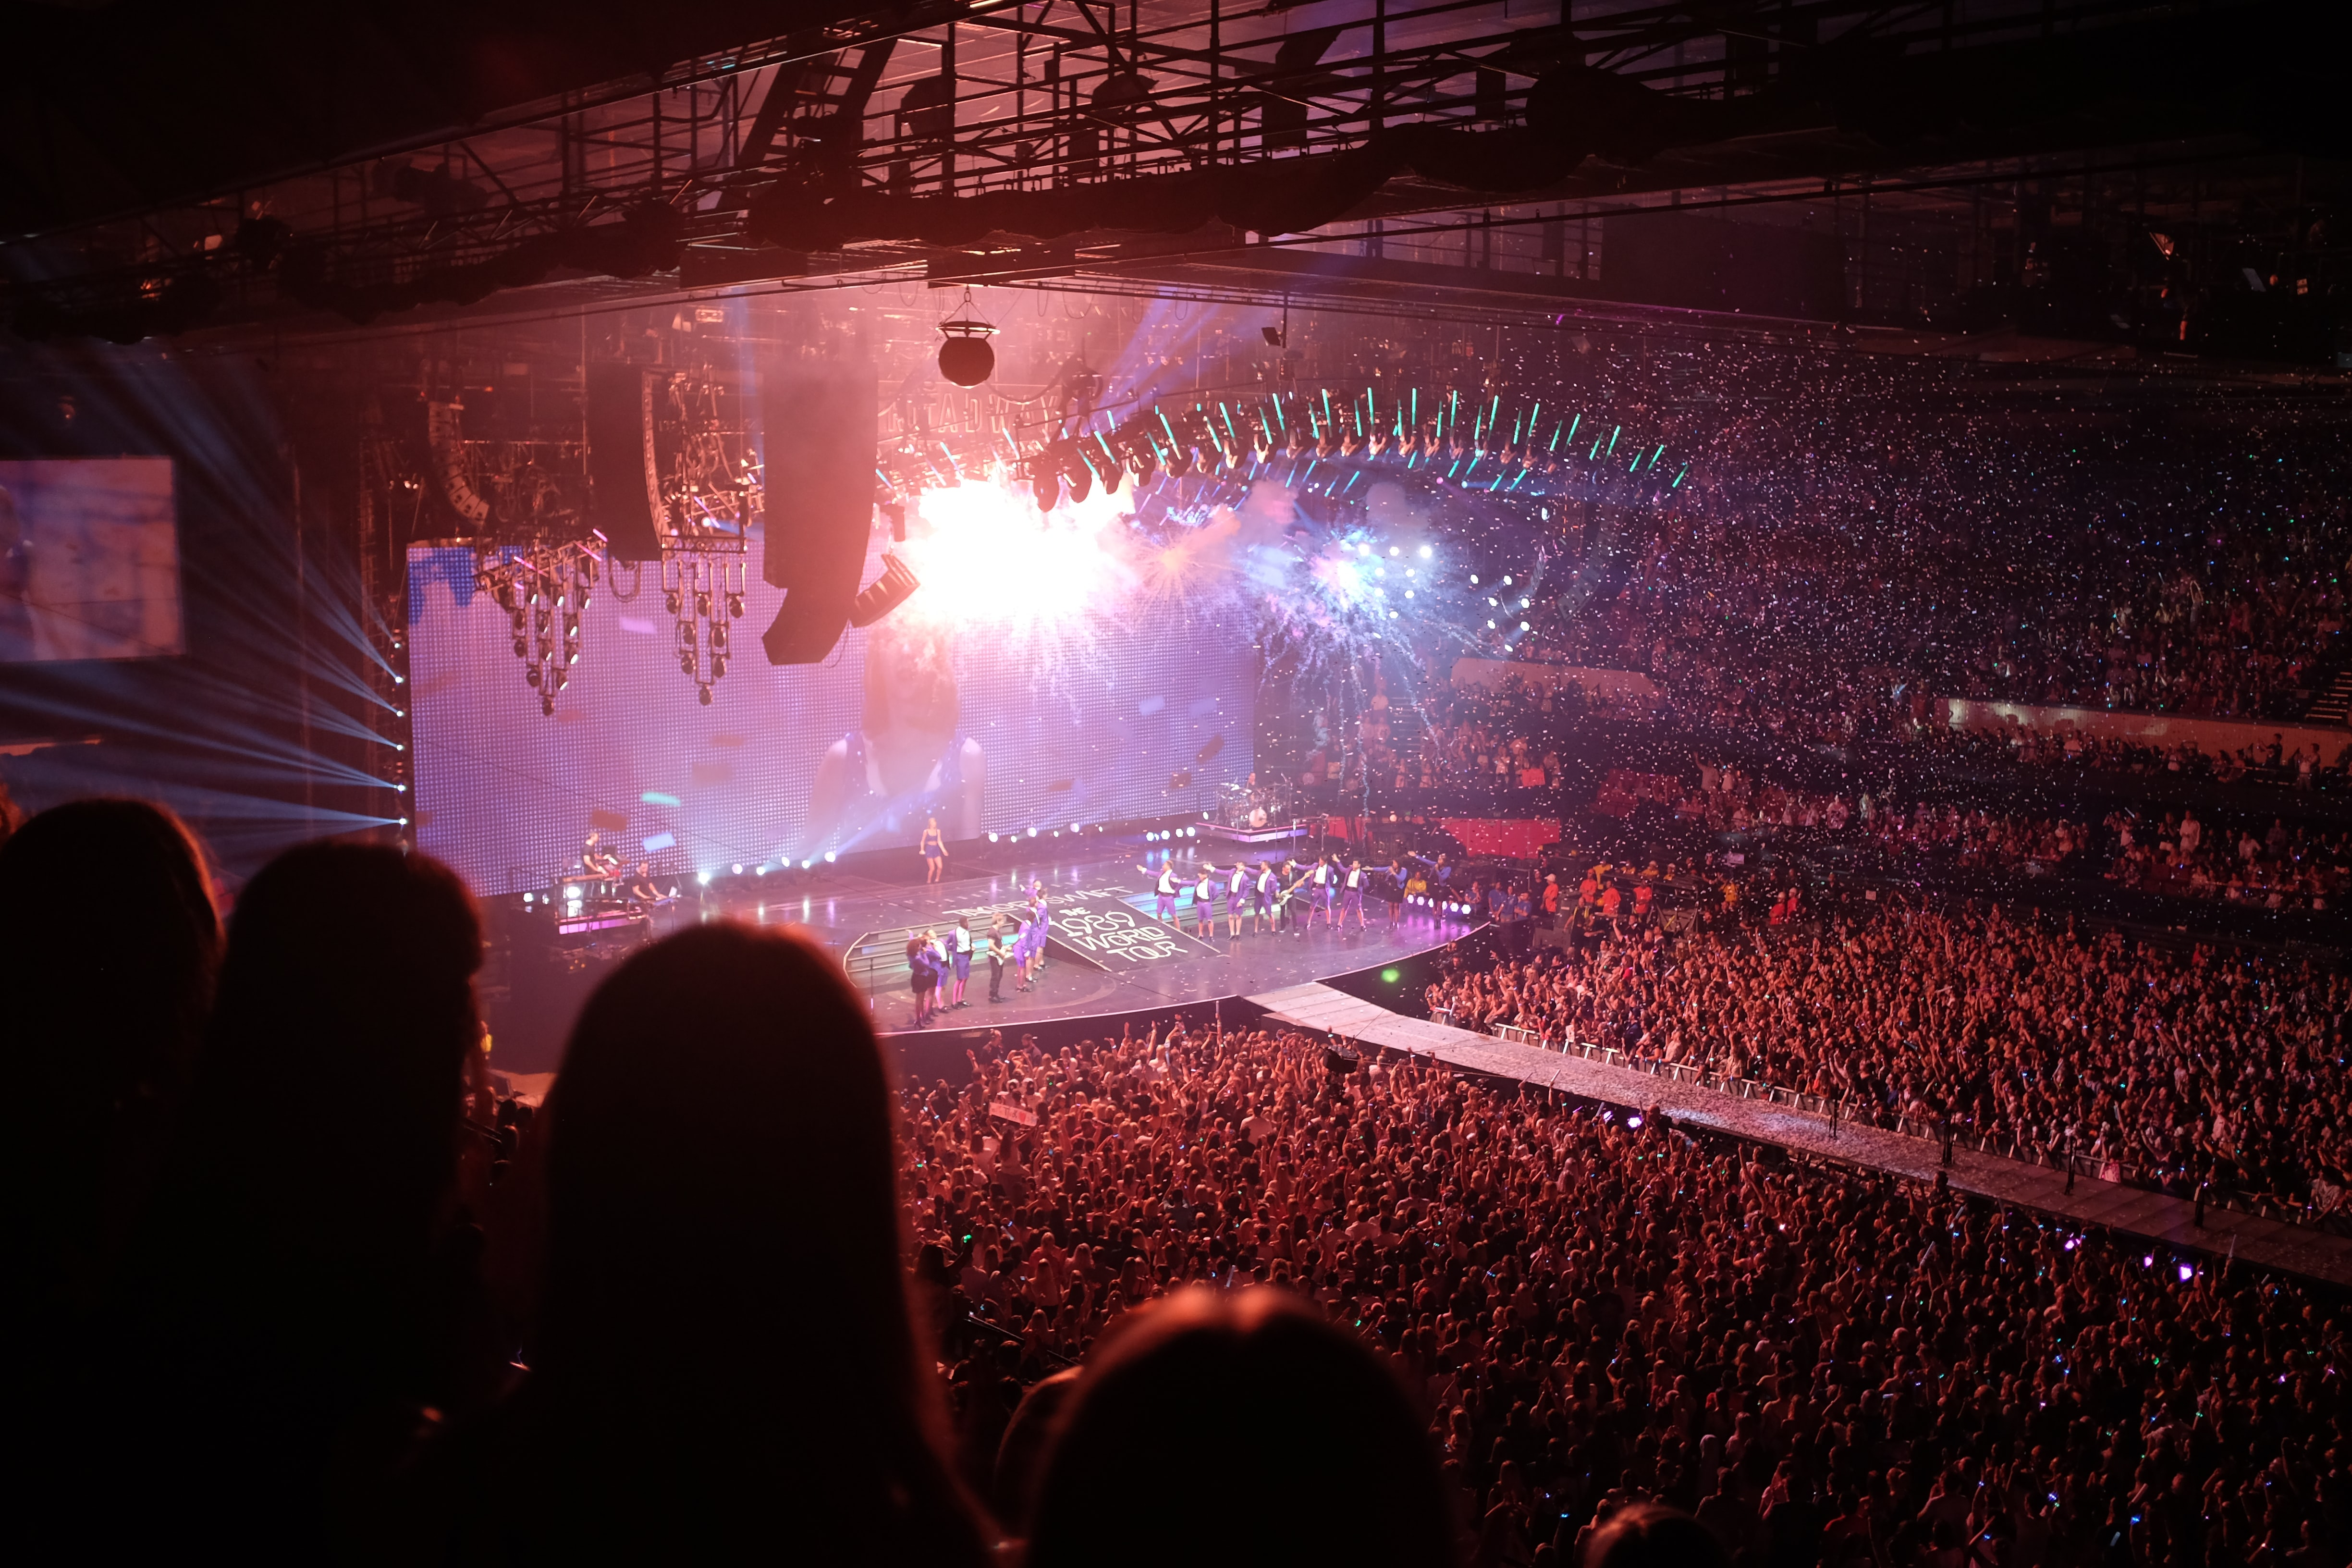 A high shot of a full concert hall with people lined up on the stage under bright lights